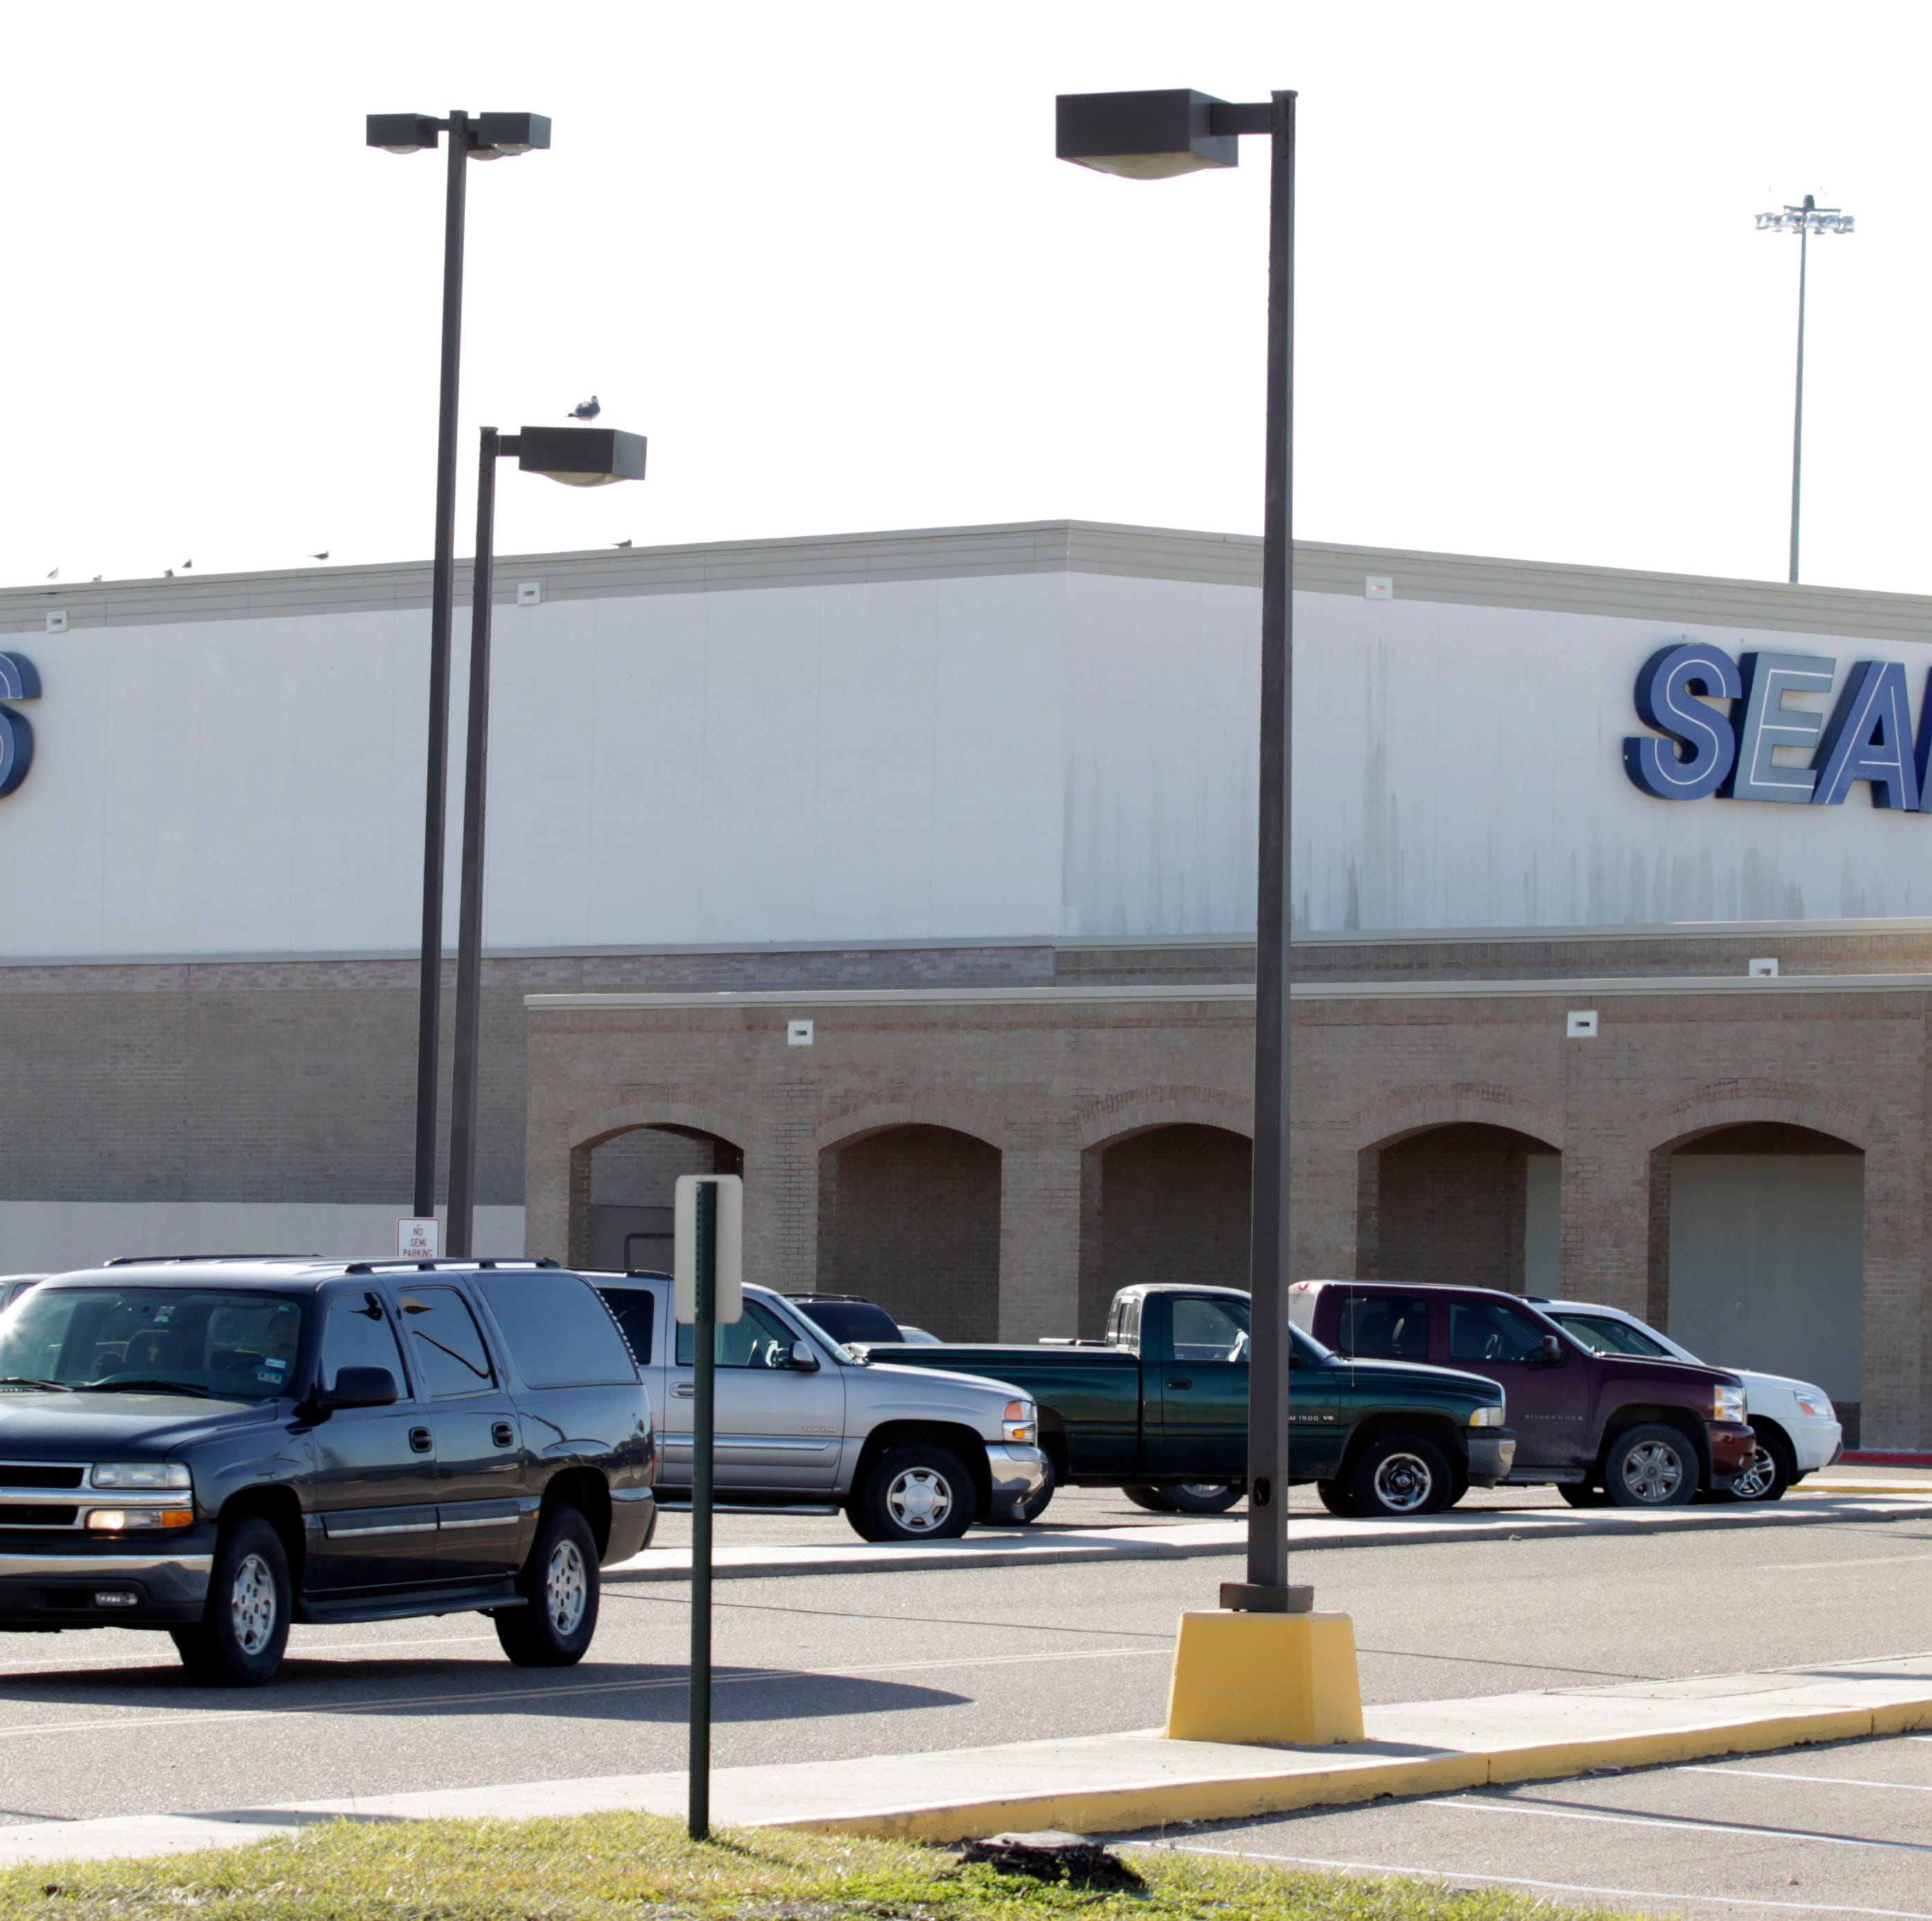 Corpus Christi-area Sears stores to remain open as parent company goes through bankruptcy